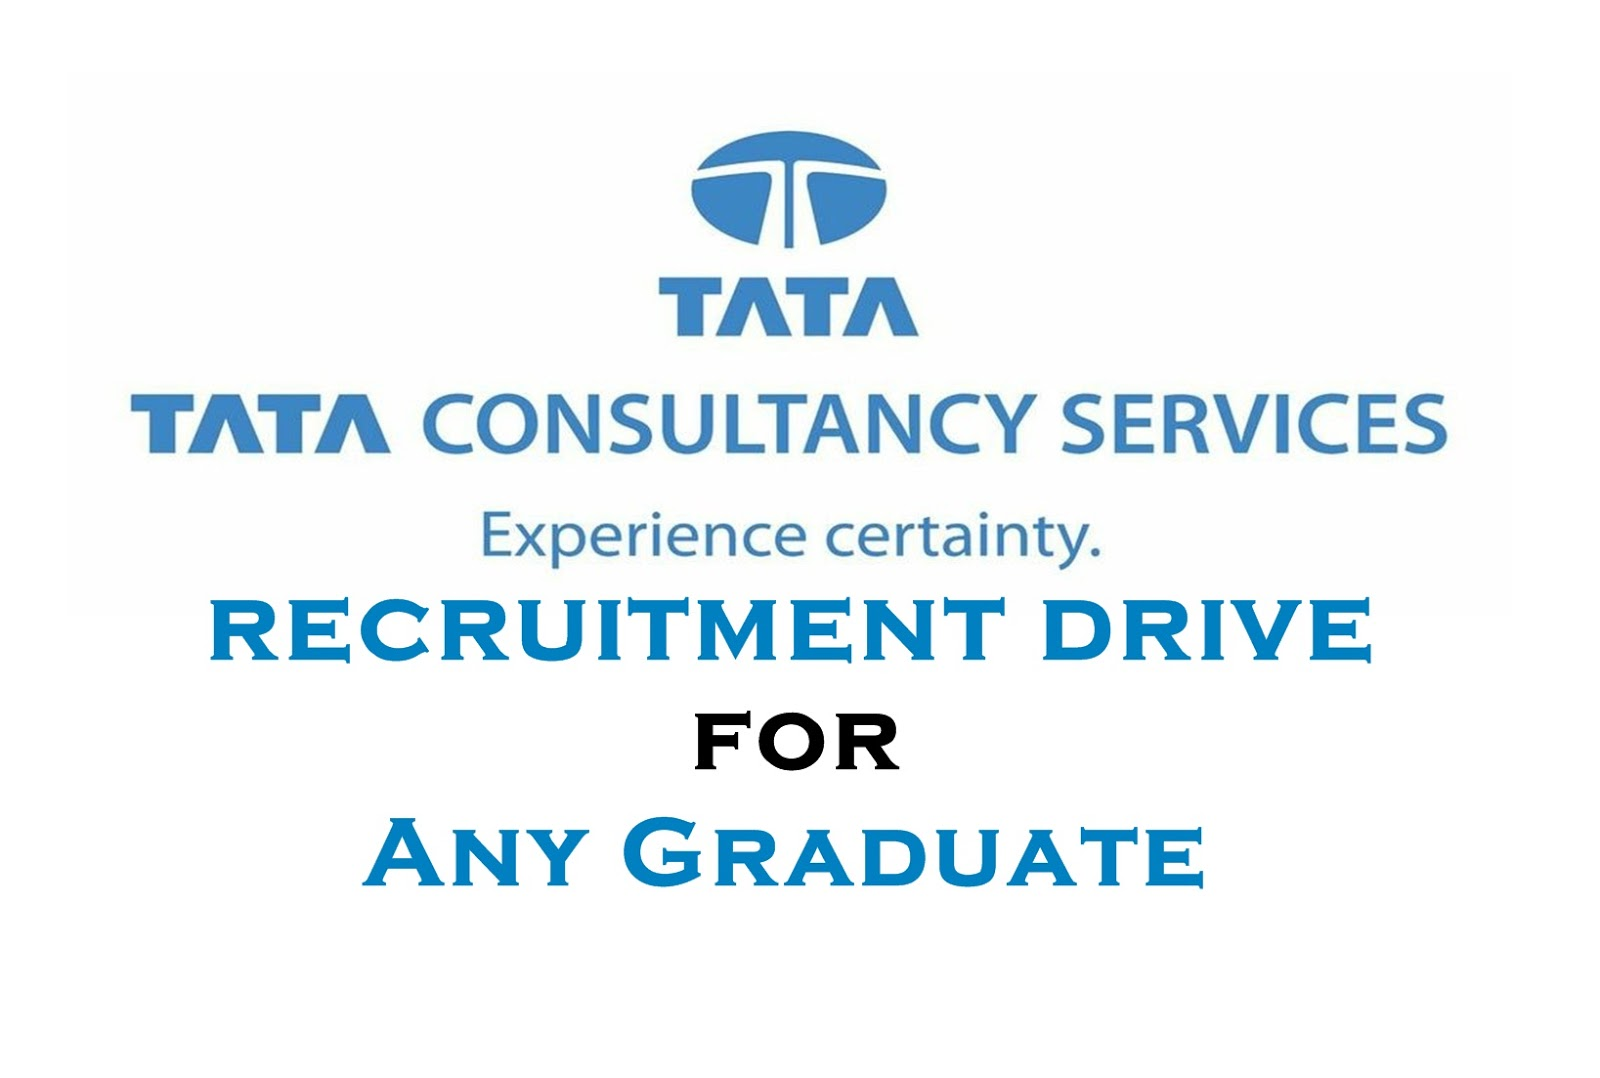 tata consultancy company About tata consultancy services ltd (tcs) tata consultancy services is an it services, consulting and business solutions organization that has been partnering with many of the world's largest.